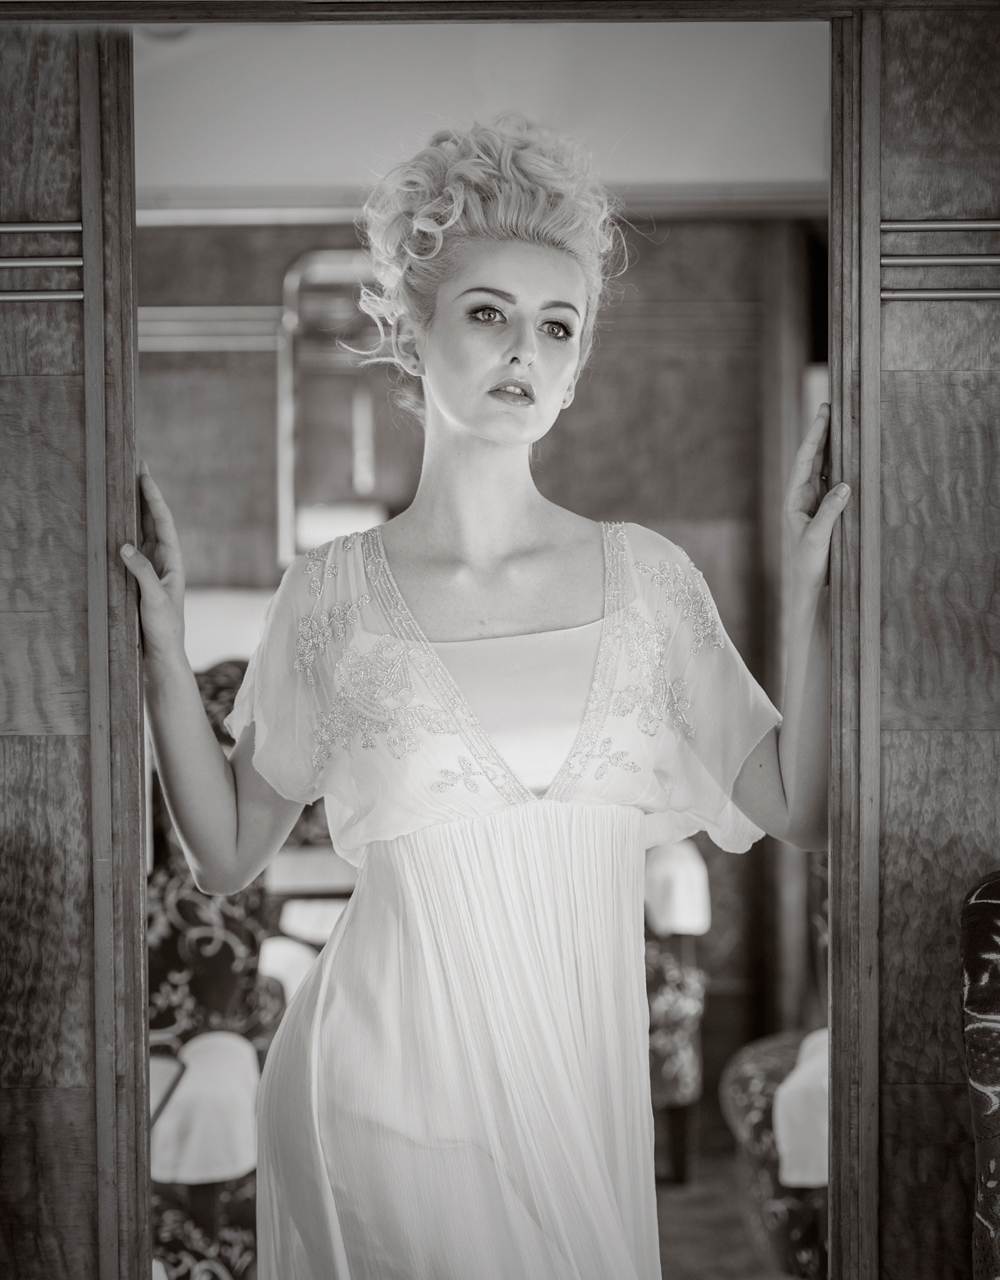 amber-tutton-model-pengelly-photography-colne-valley-railway-railway-bridal-shoot-19